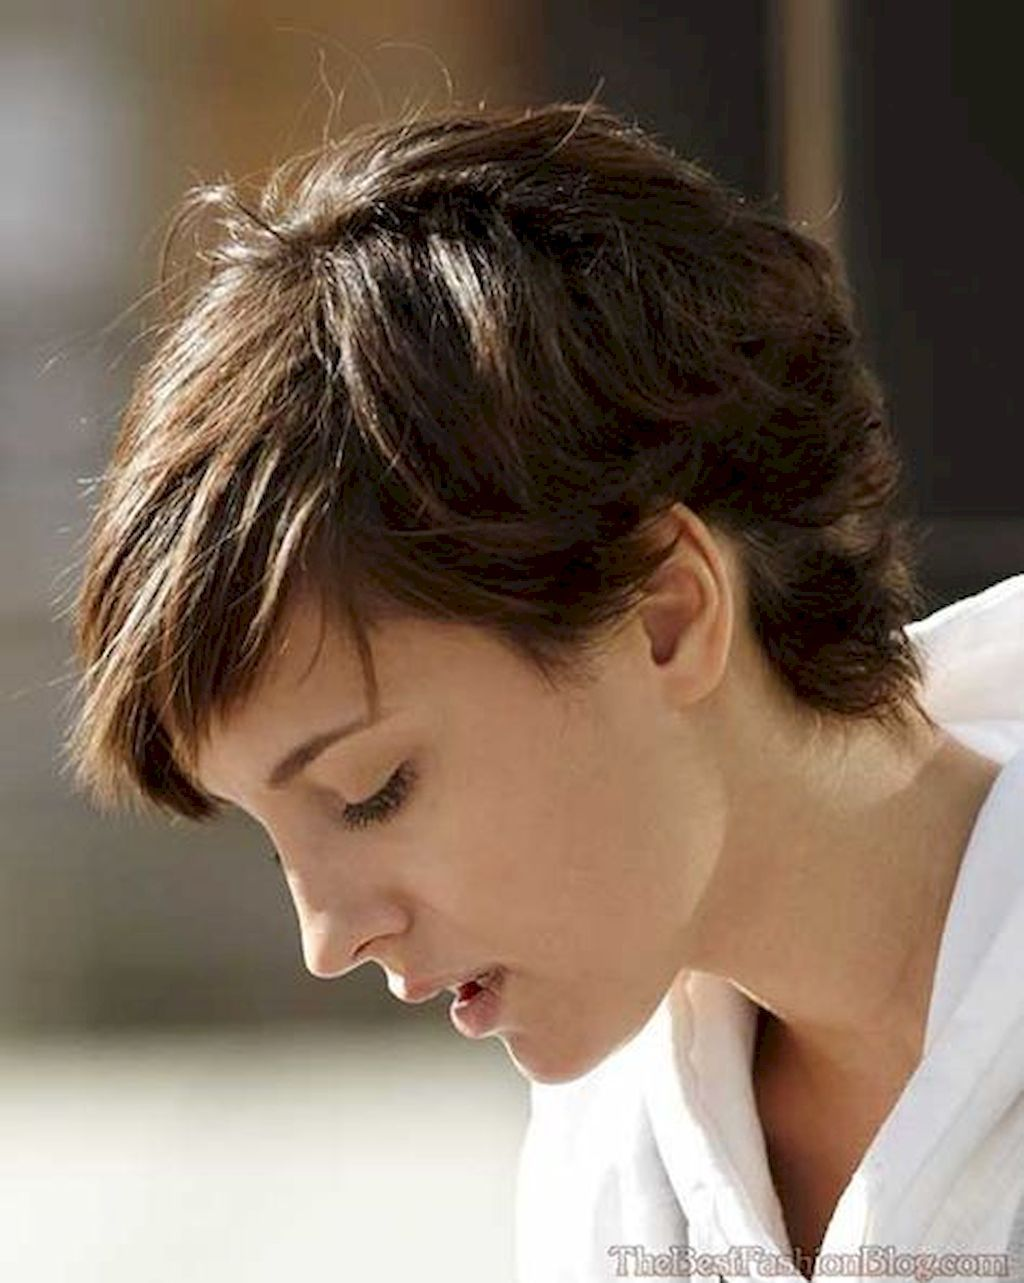 72 Classy Short Pixie Haircuts And Hairstyles For Thick Hair Short